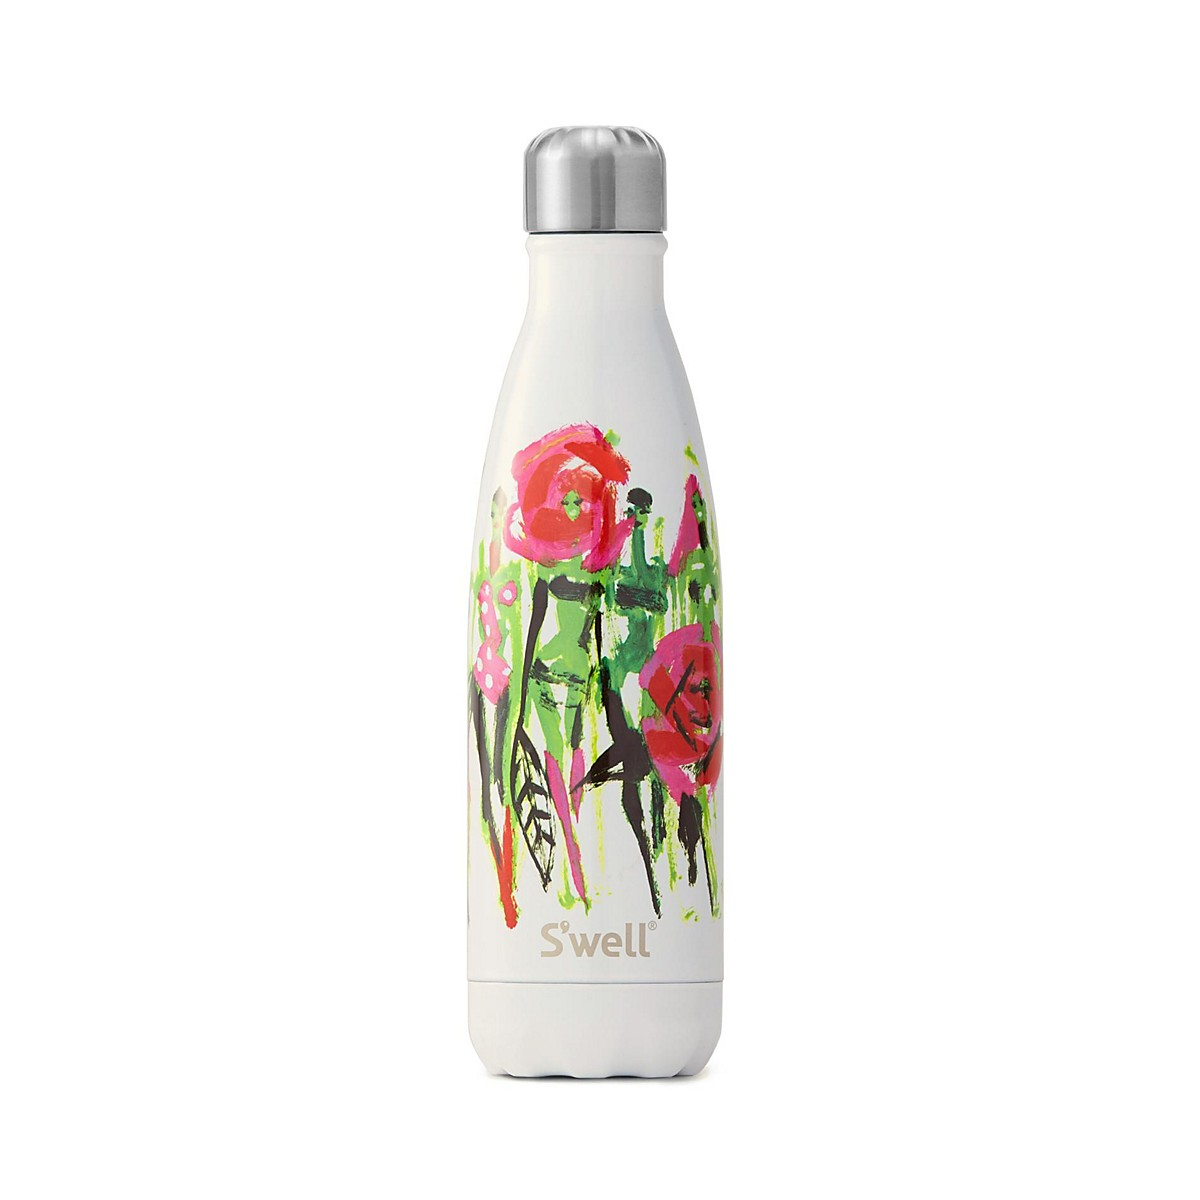 Swell Breast Cancer Awareness water bottle in Karma